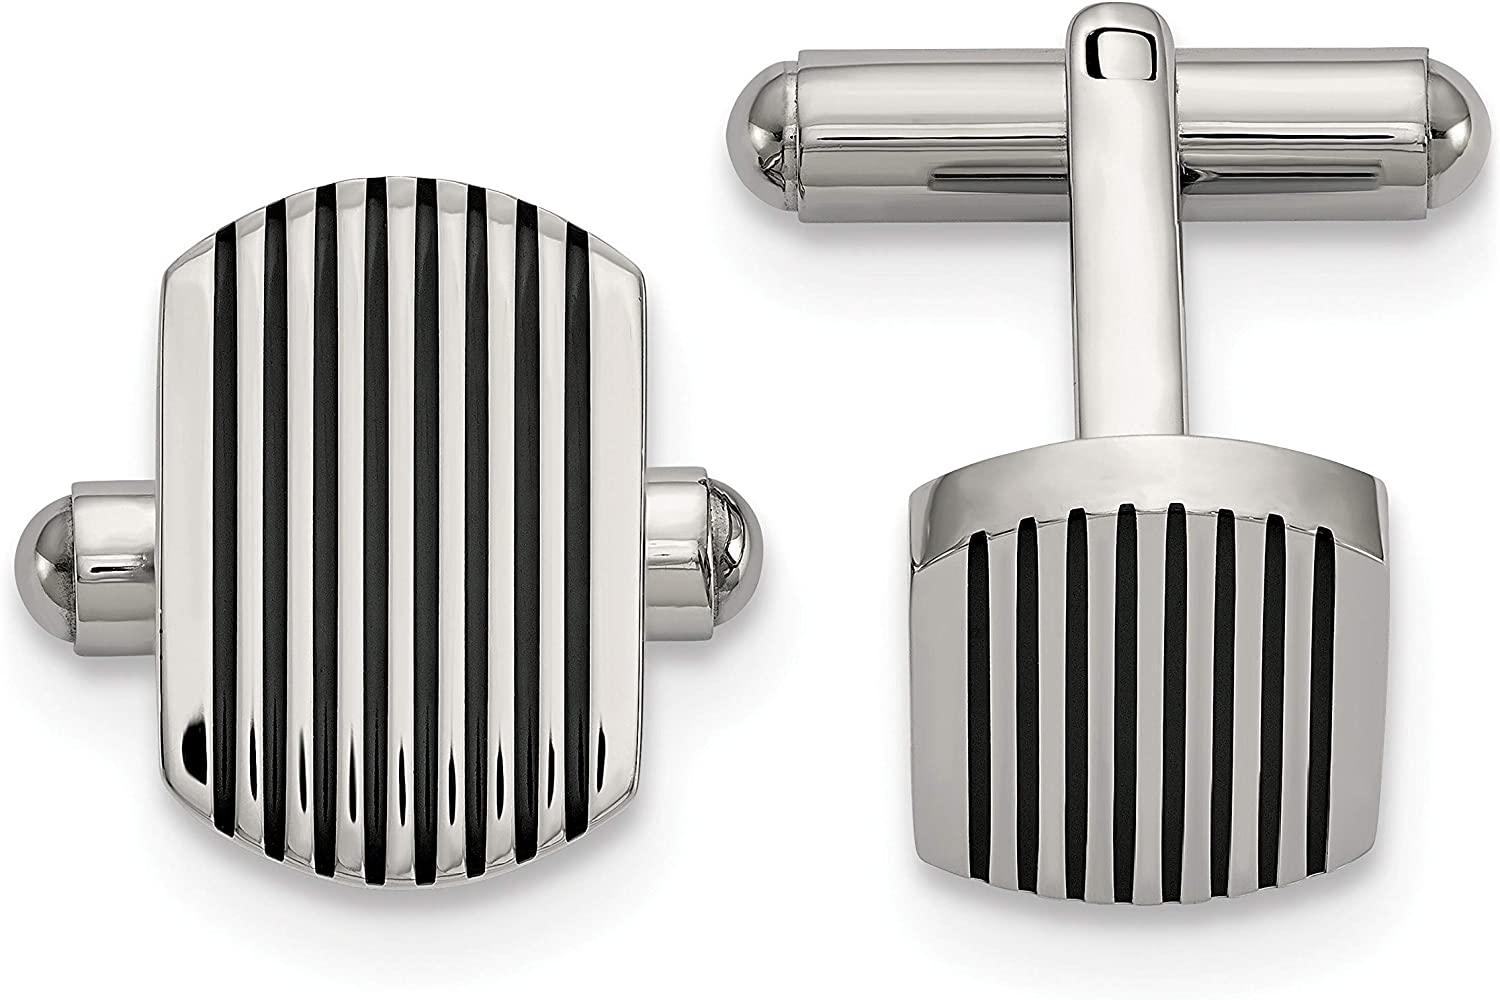 Stainless Steel Polished Black IP-Plated Striped Cuff Links Men's